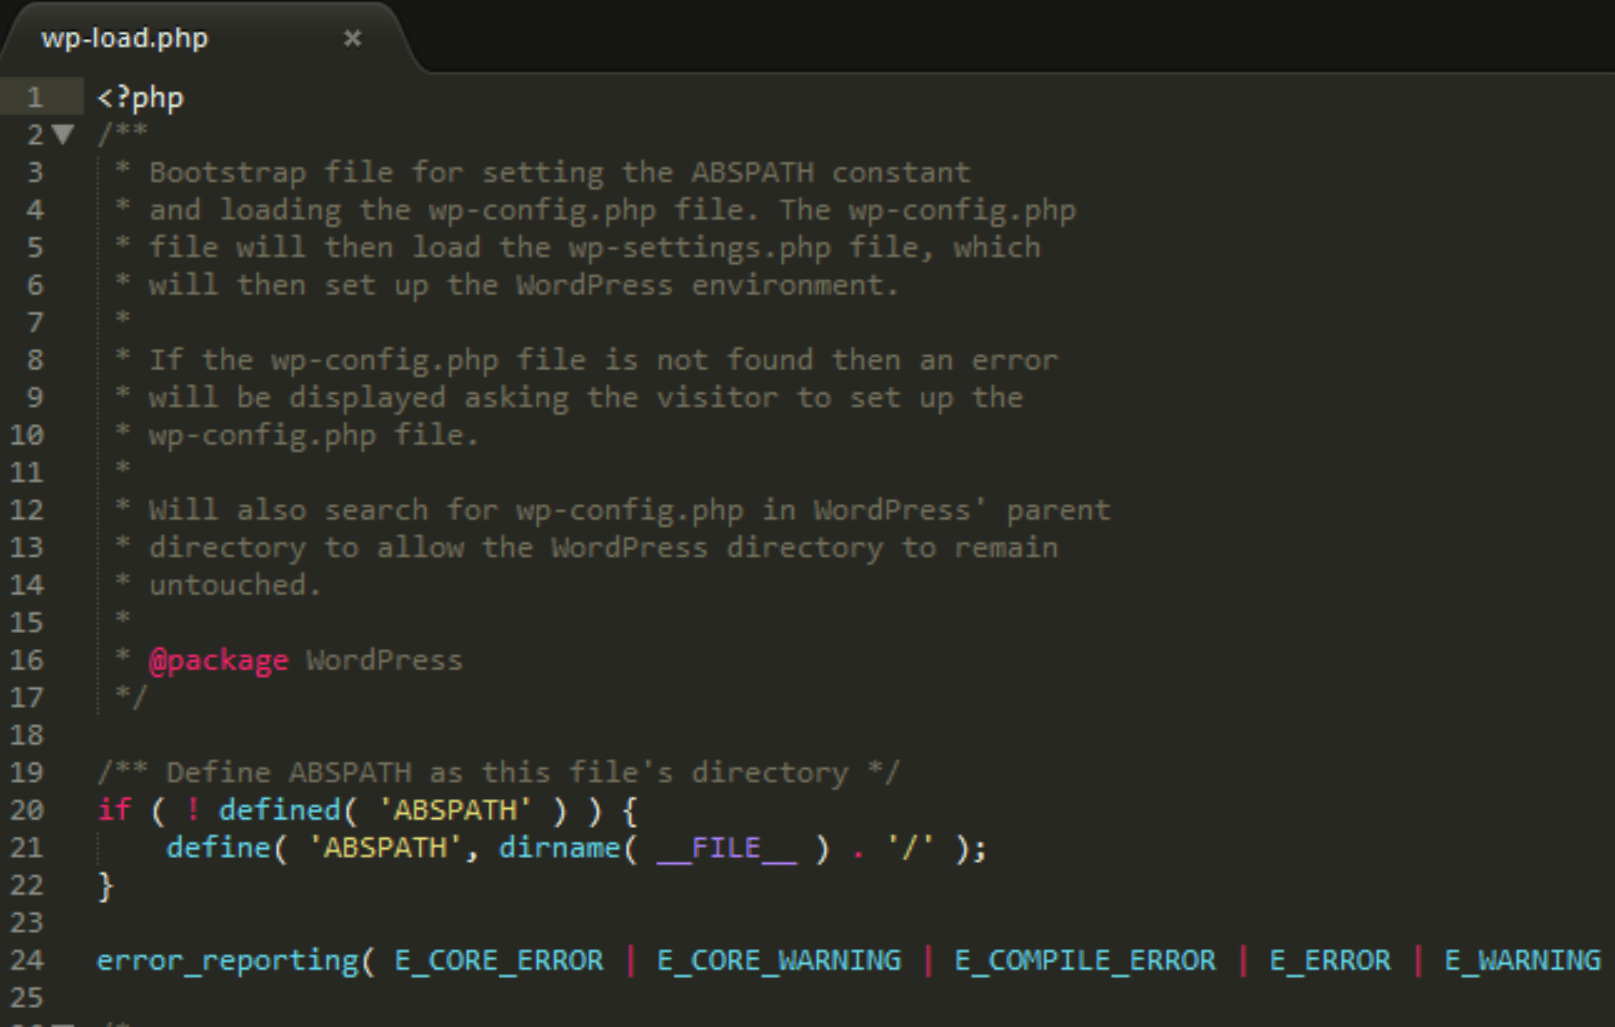 The wp-load.php file.